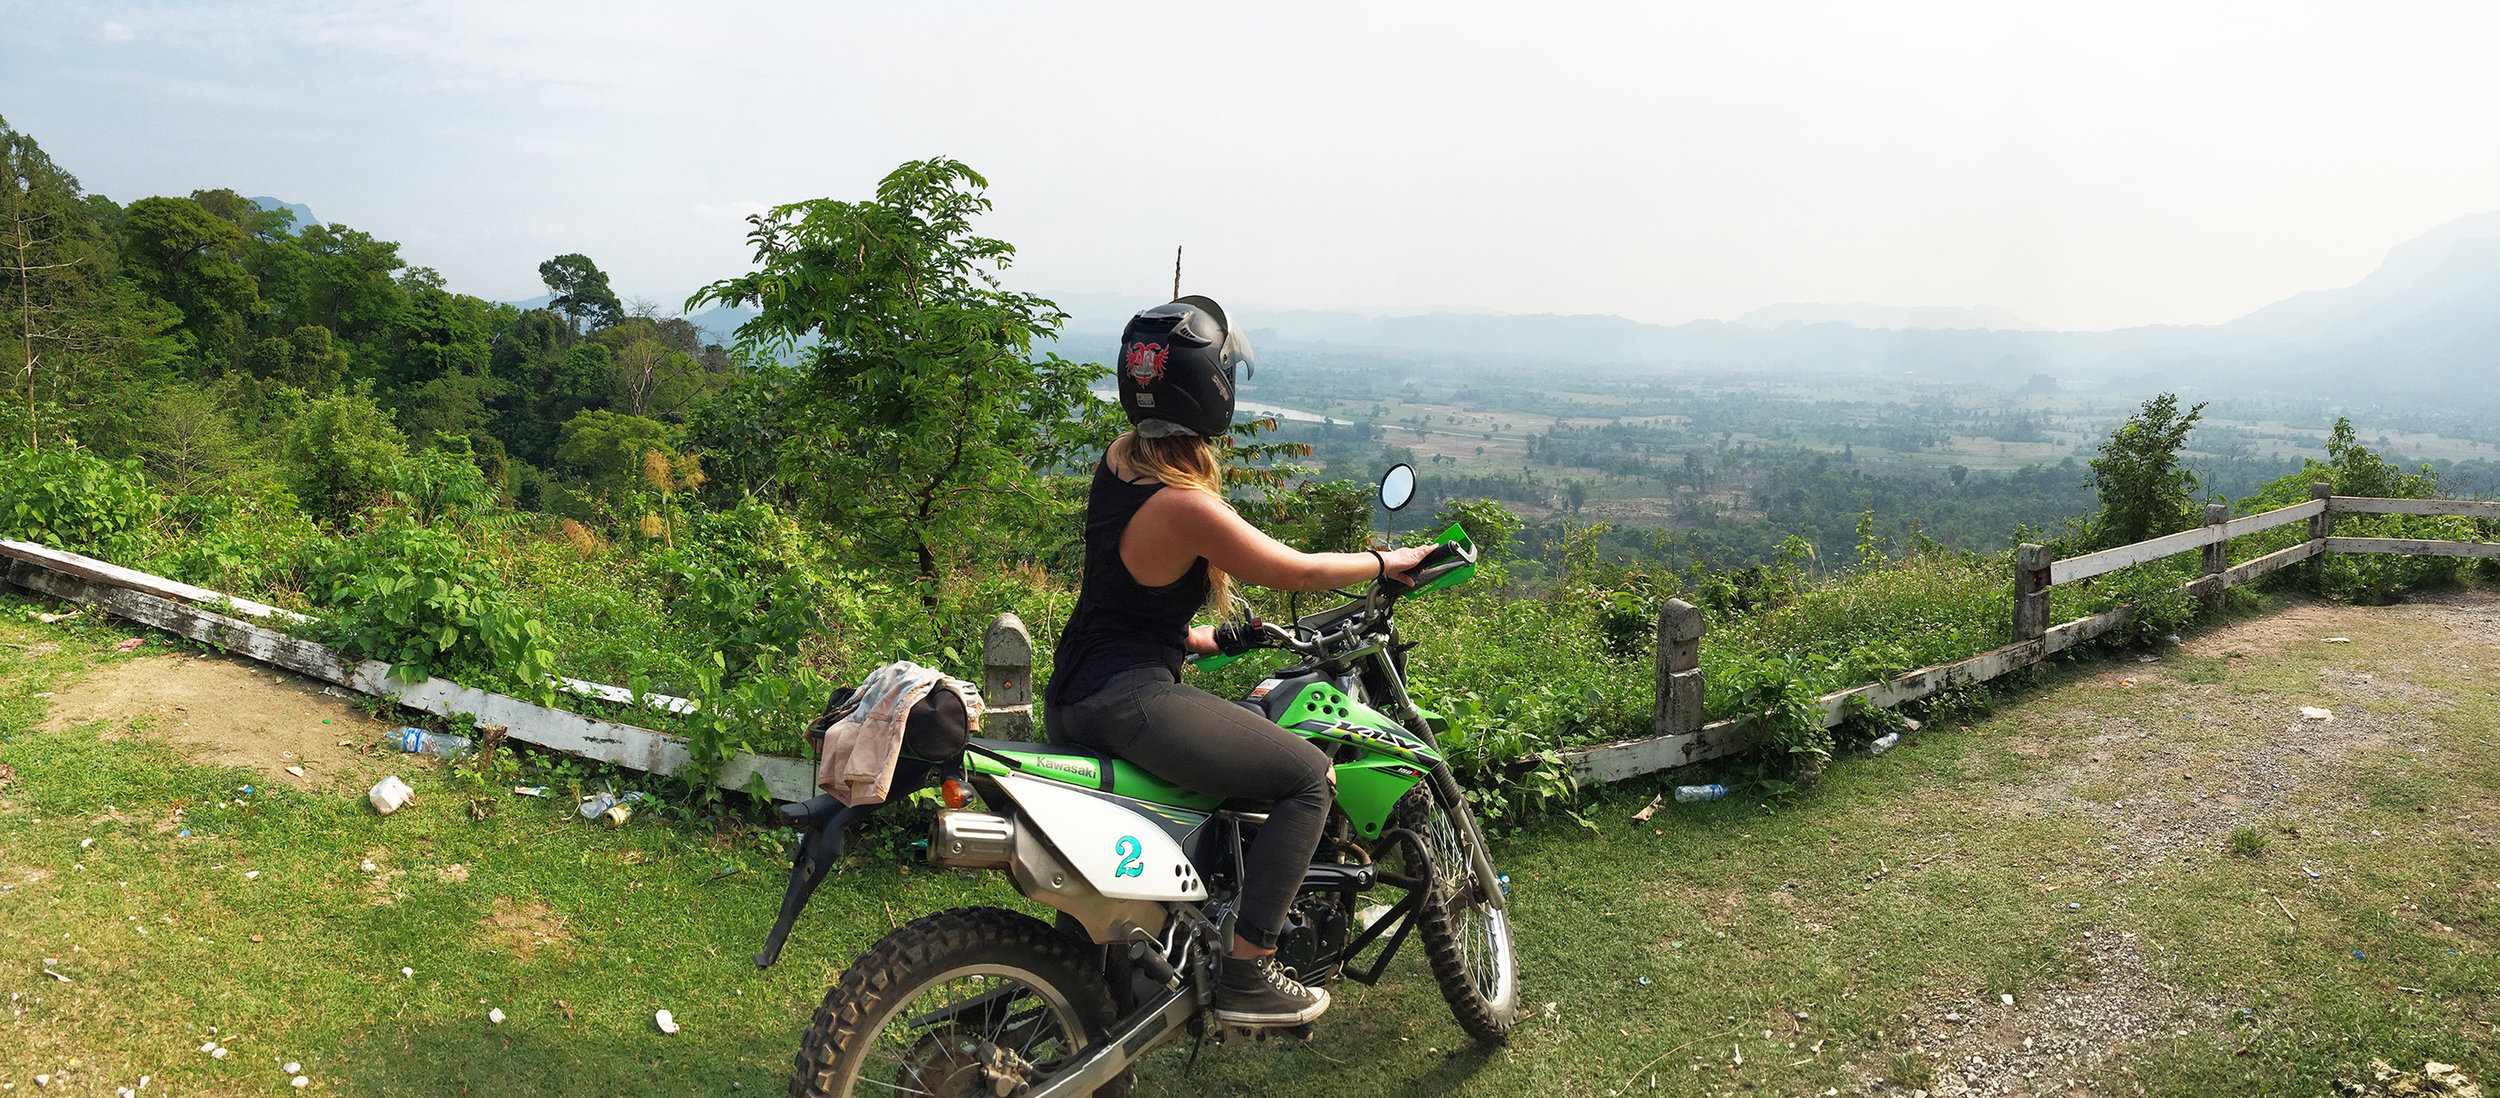 Read about our journey on the Thakhek Loop here!